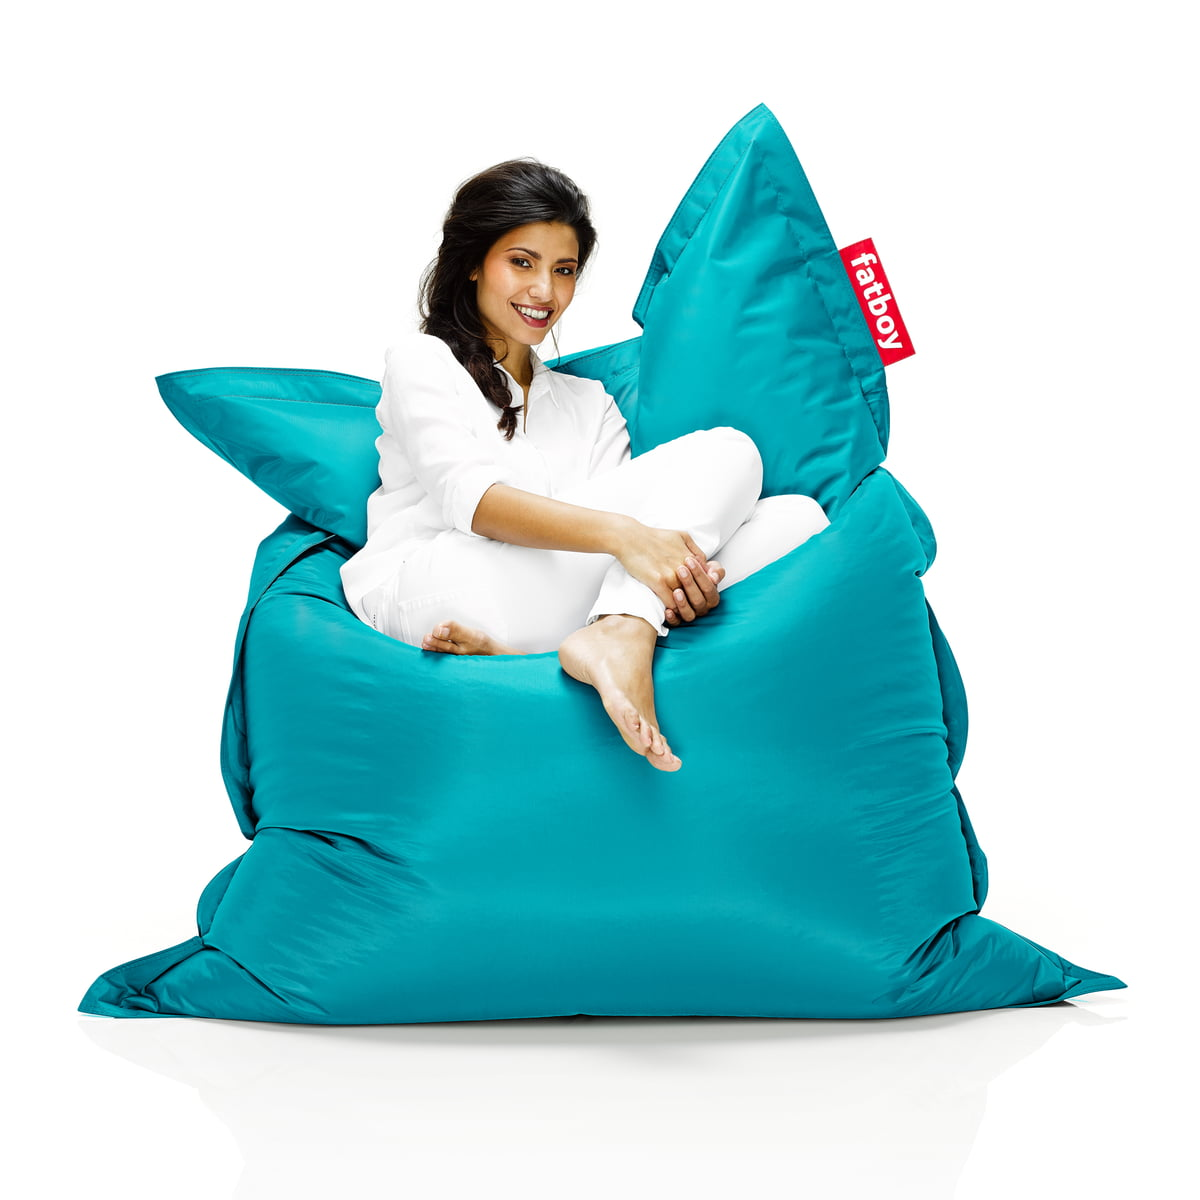 Fatboy Original Beanbag Situation With Woman On Turquoise